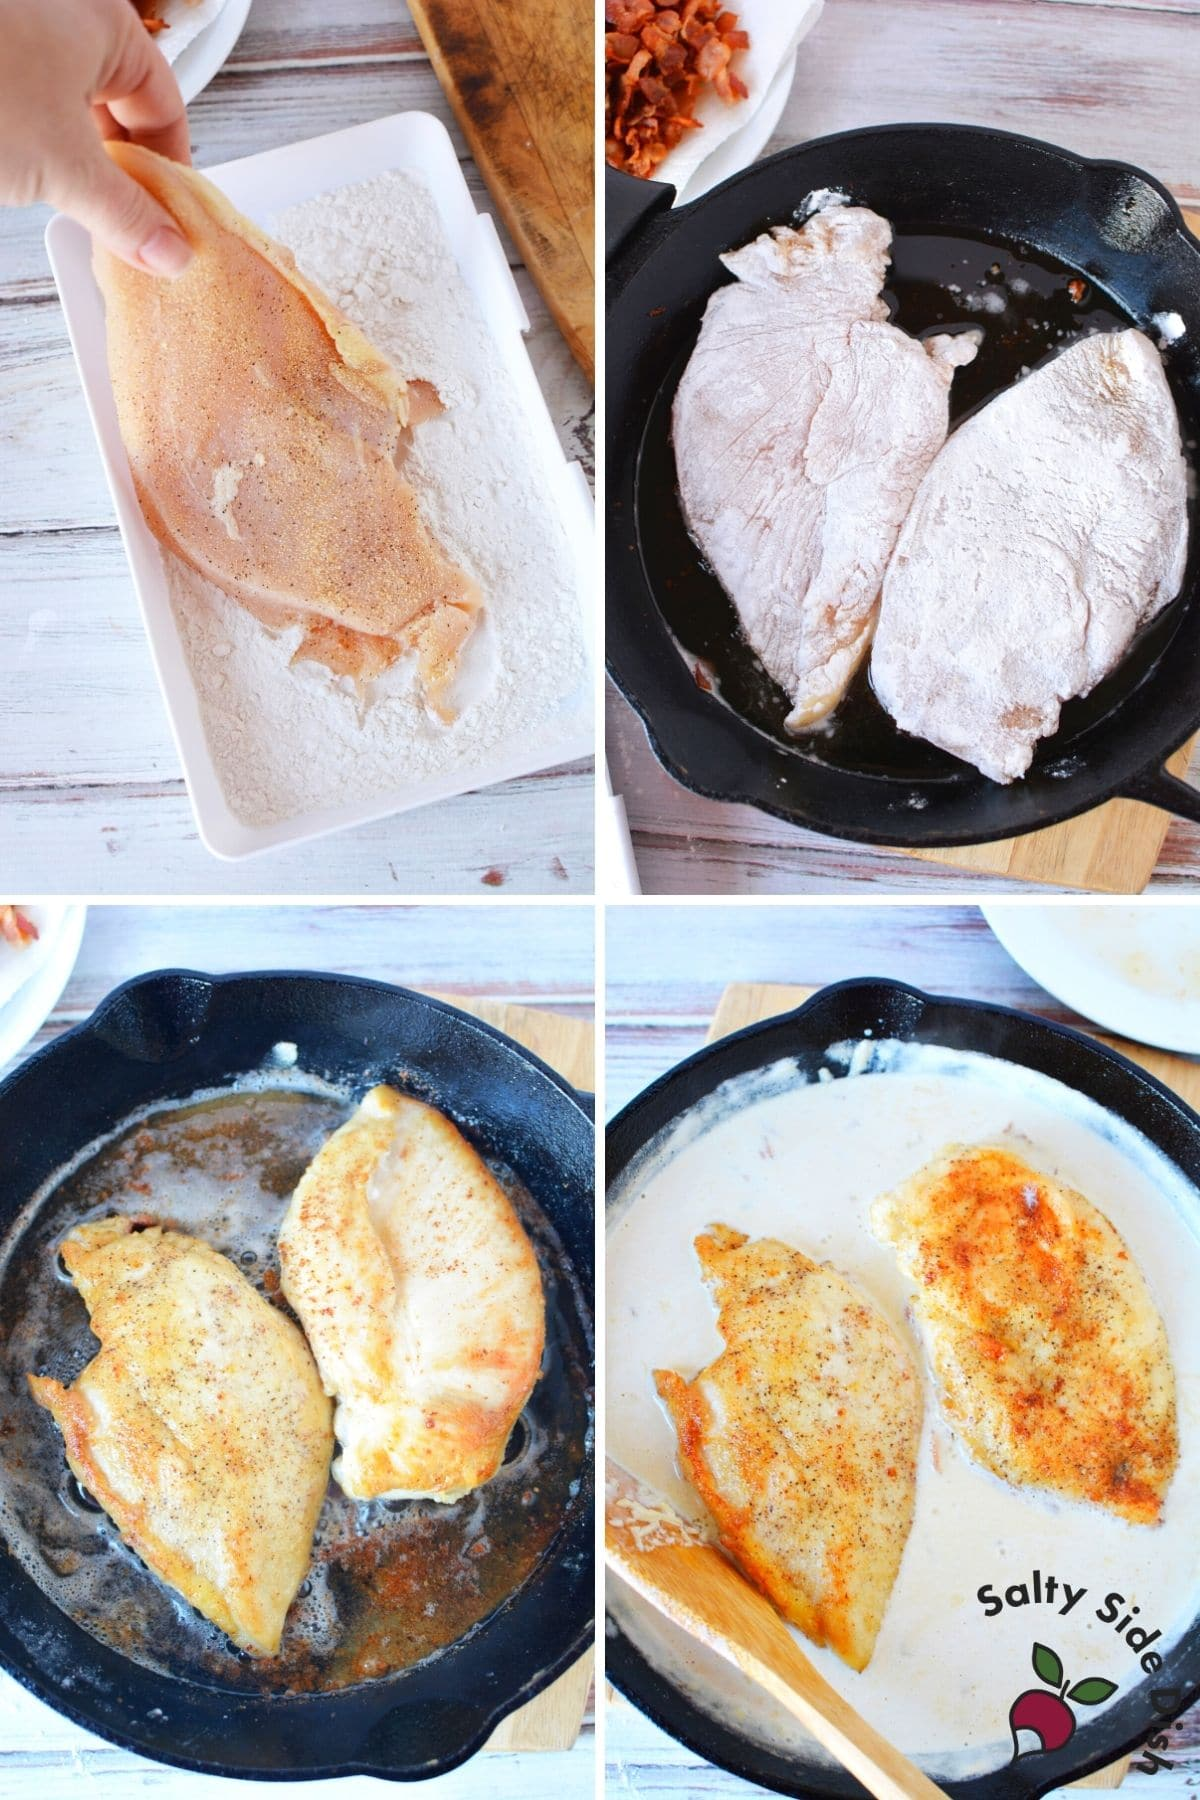 chicken breasts being dredged into flour and fried in a cast iron pan